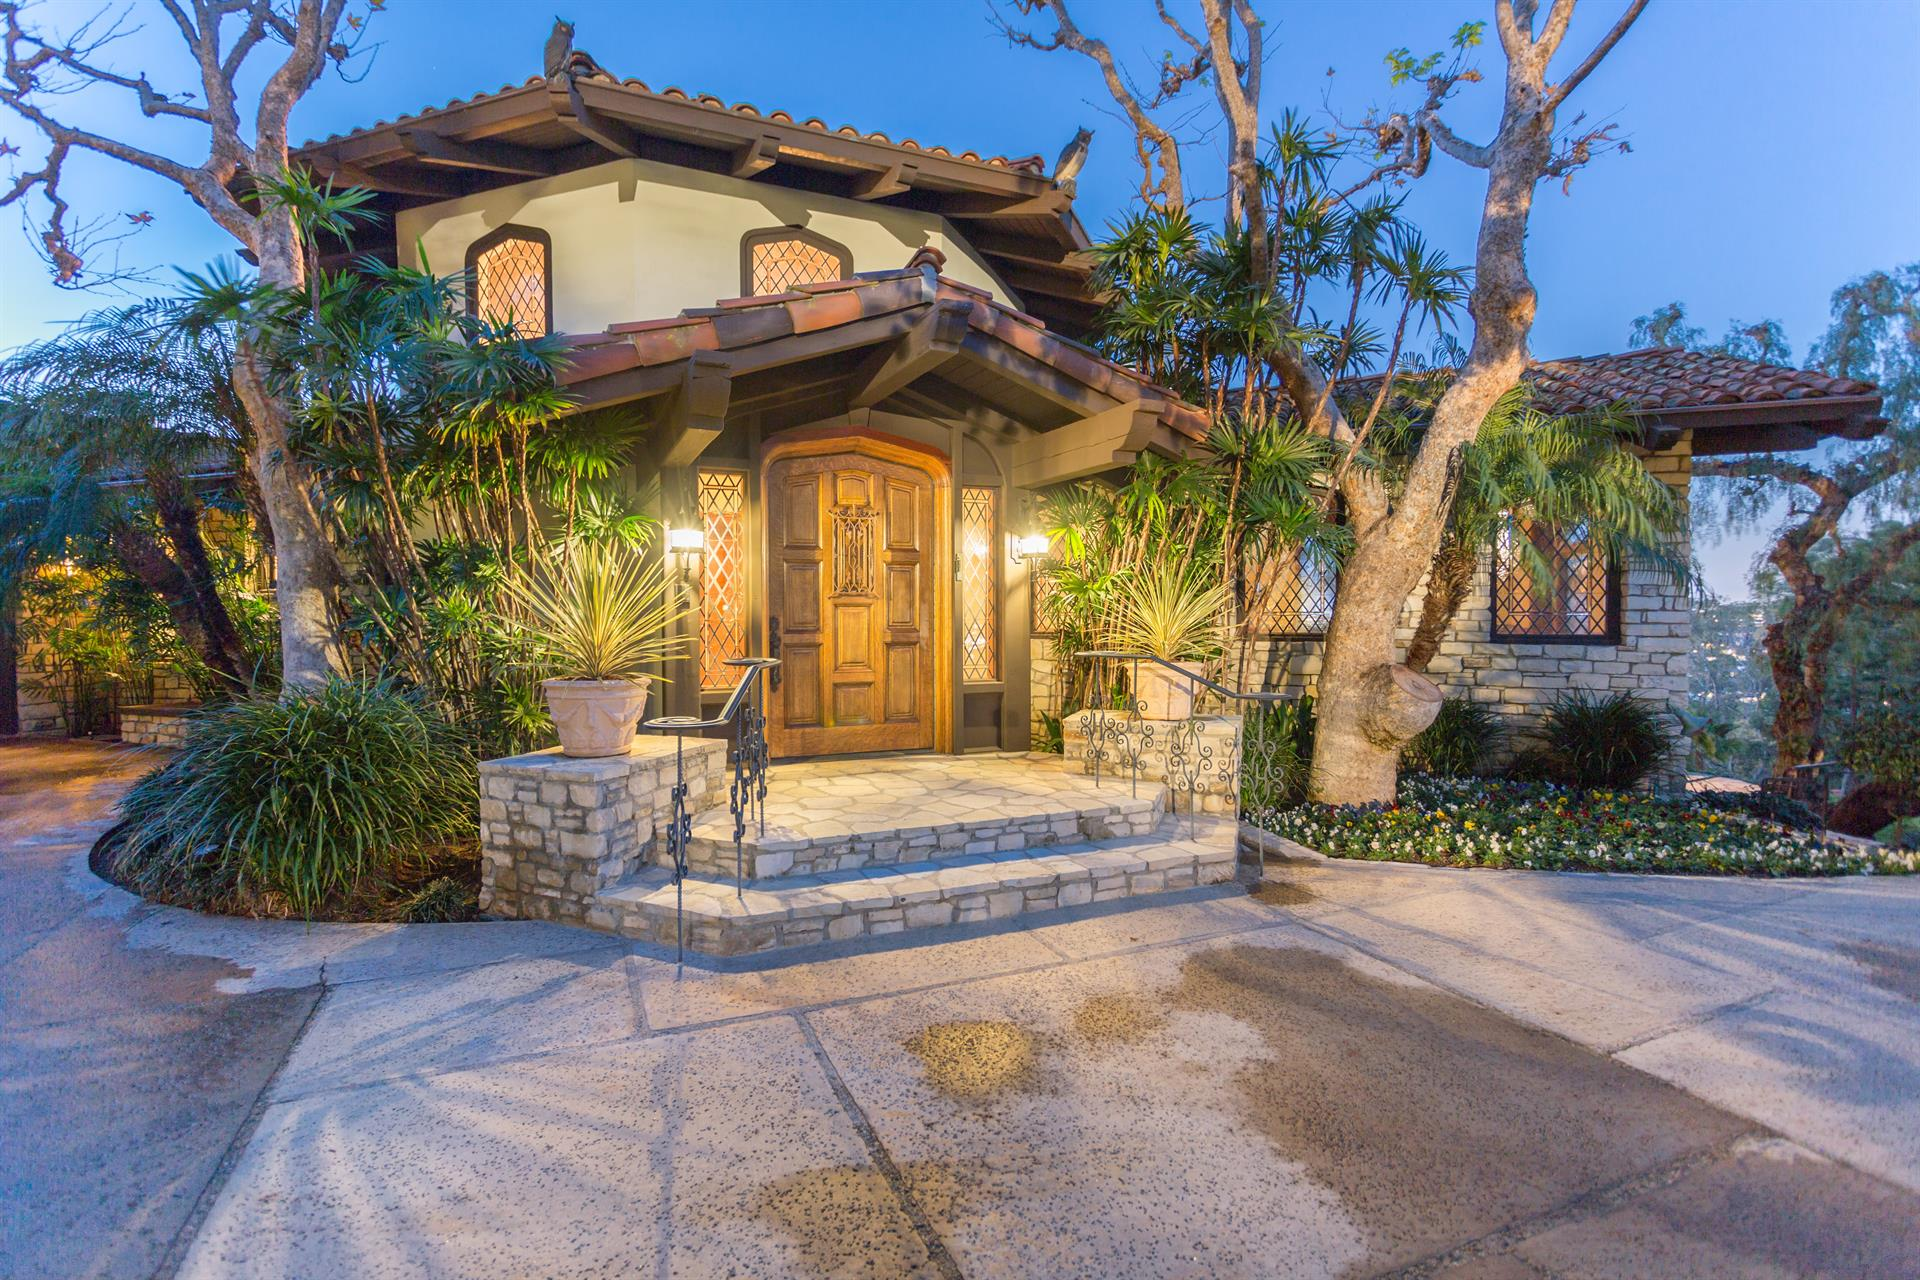 King Of The Hill A Luxury Home For Sale In Palos Verdes